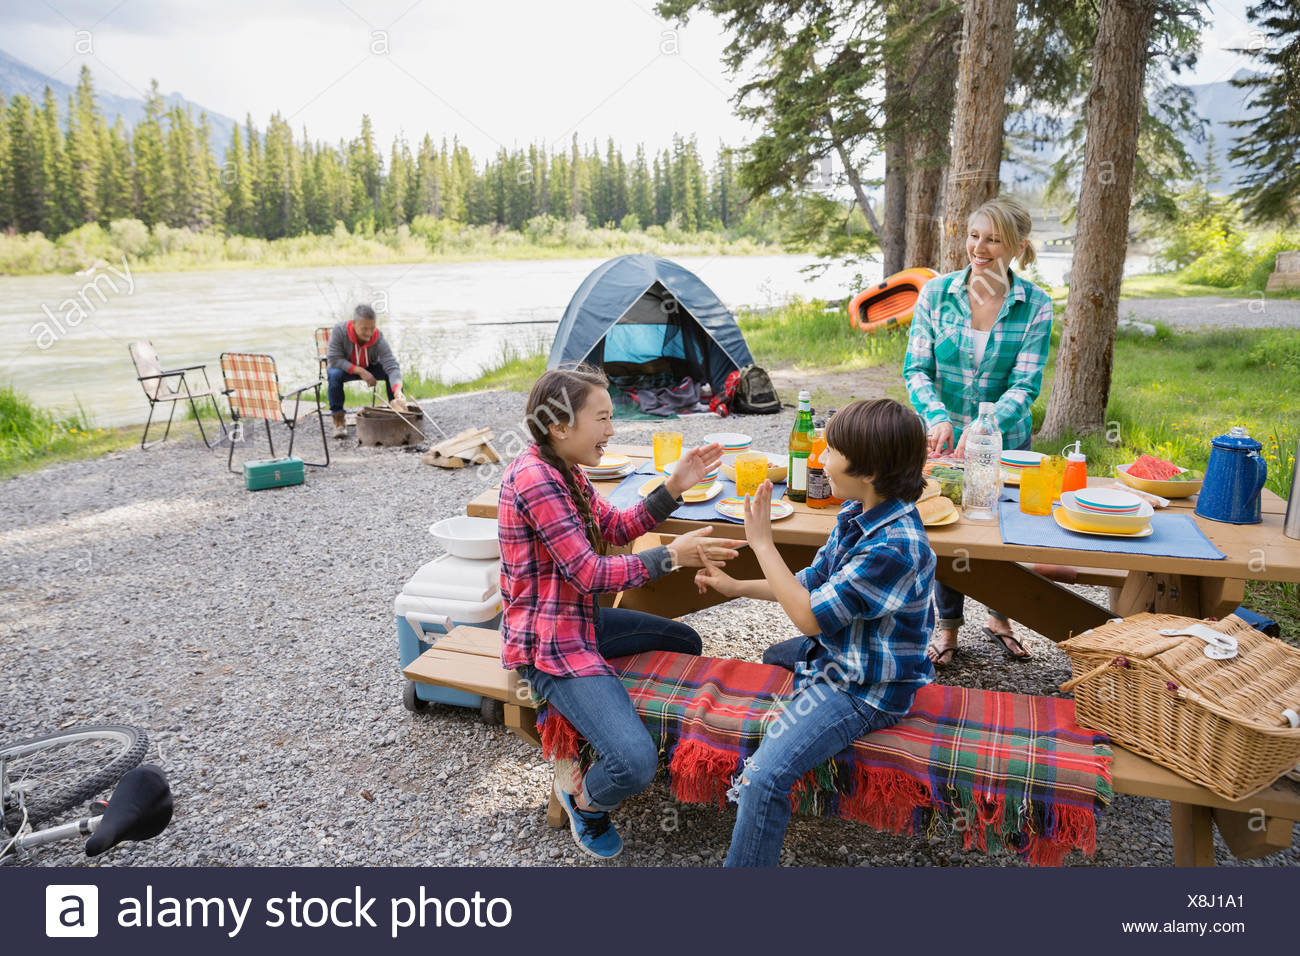 Family relaxing together at campsite - Stock Image